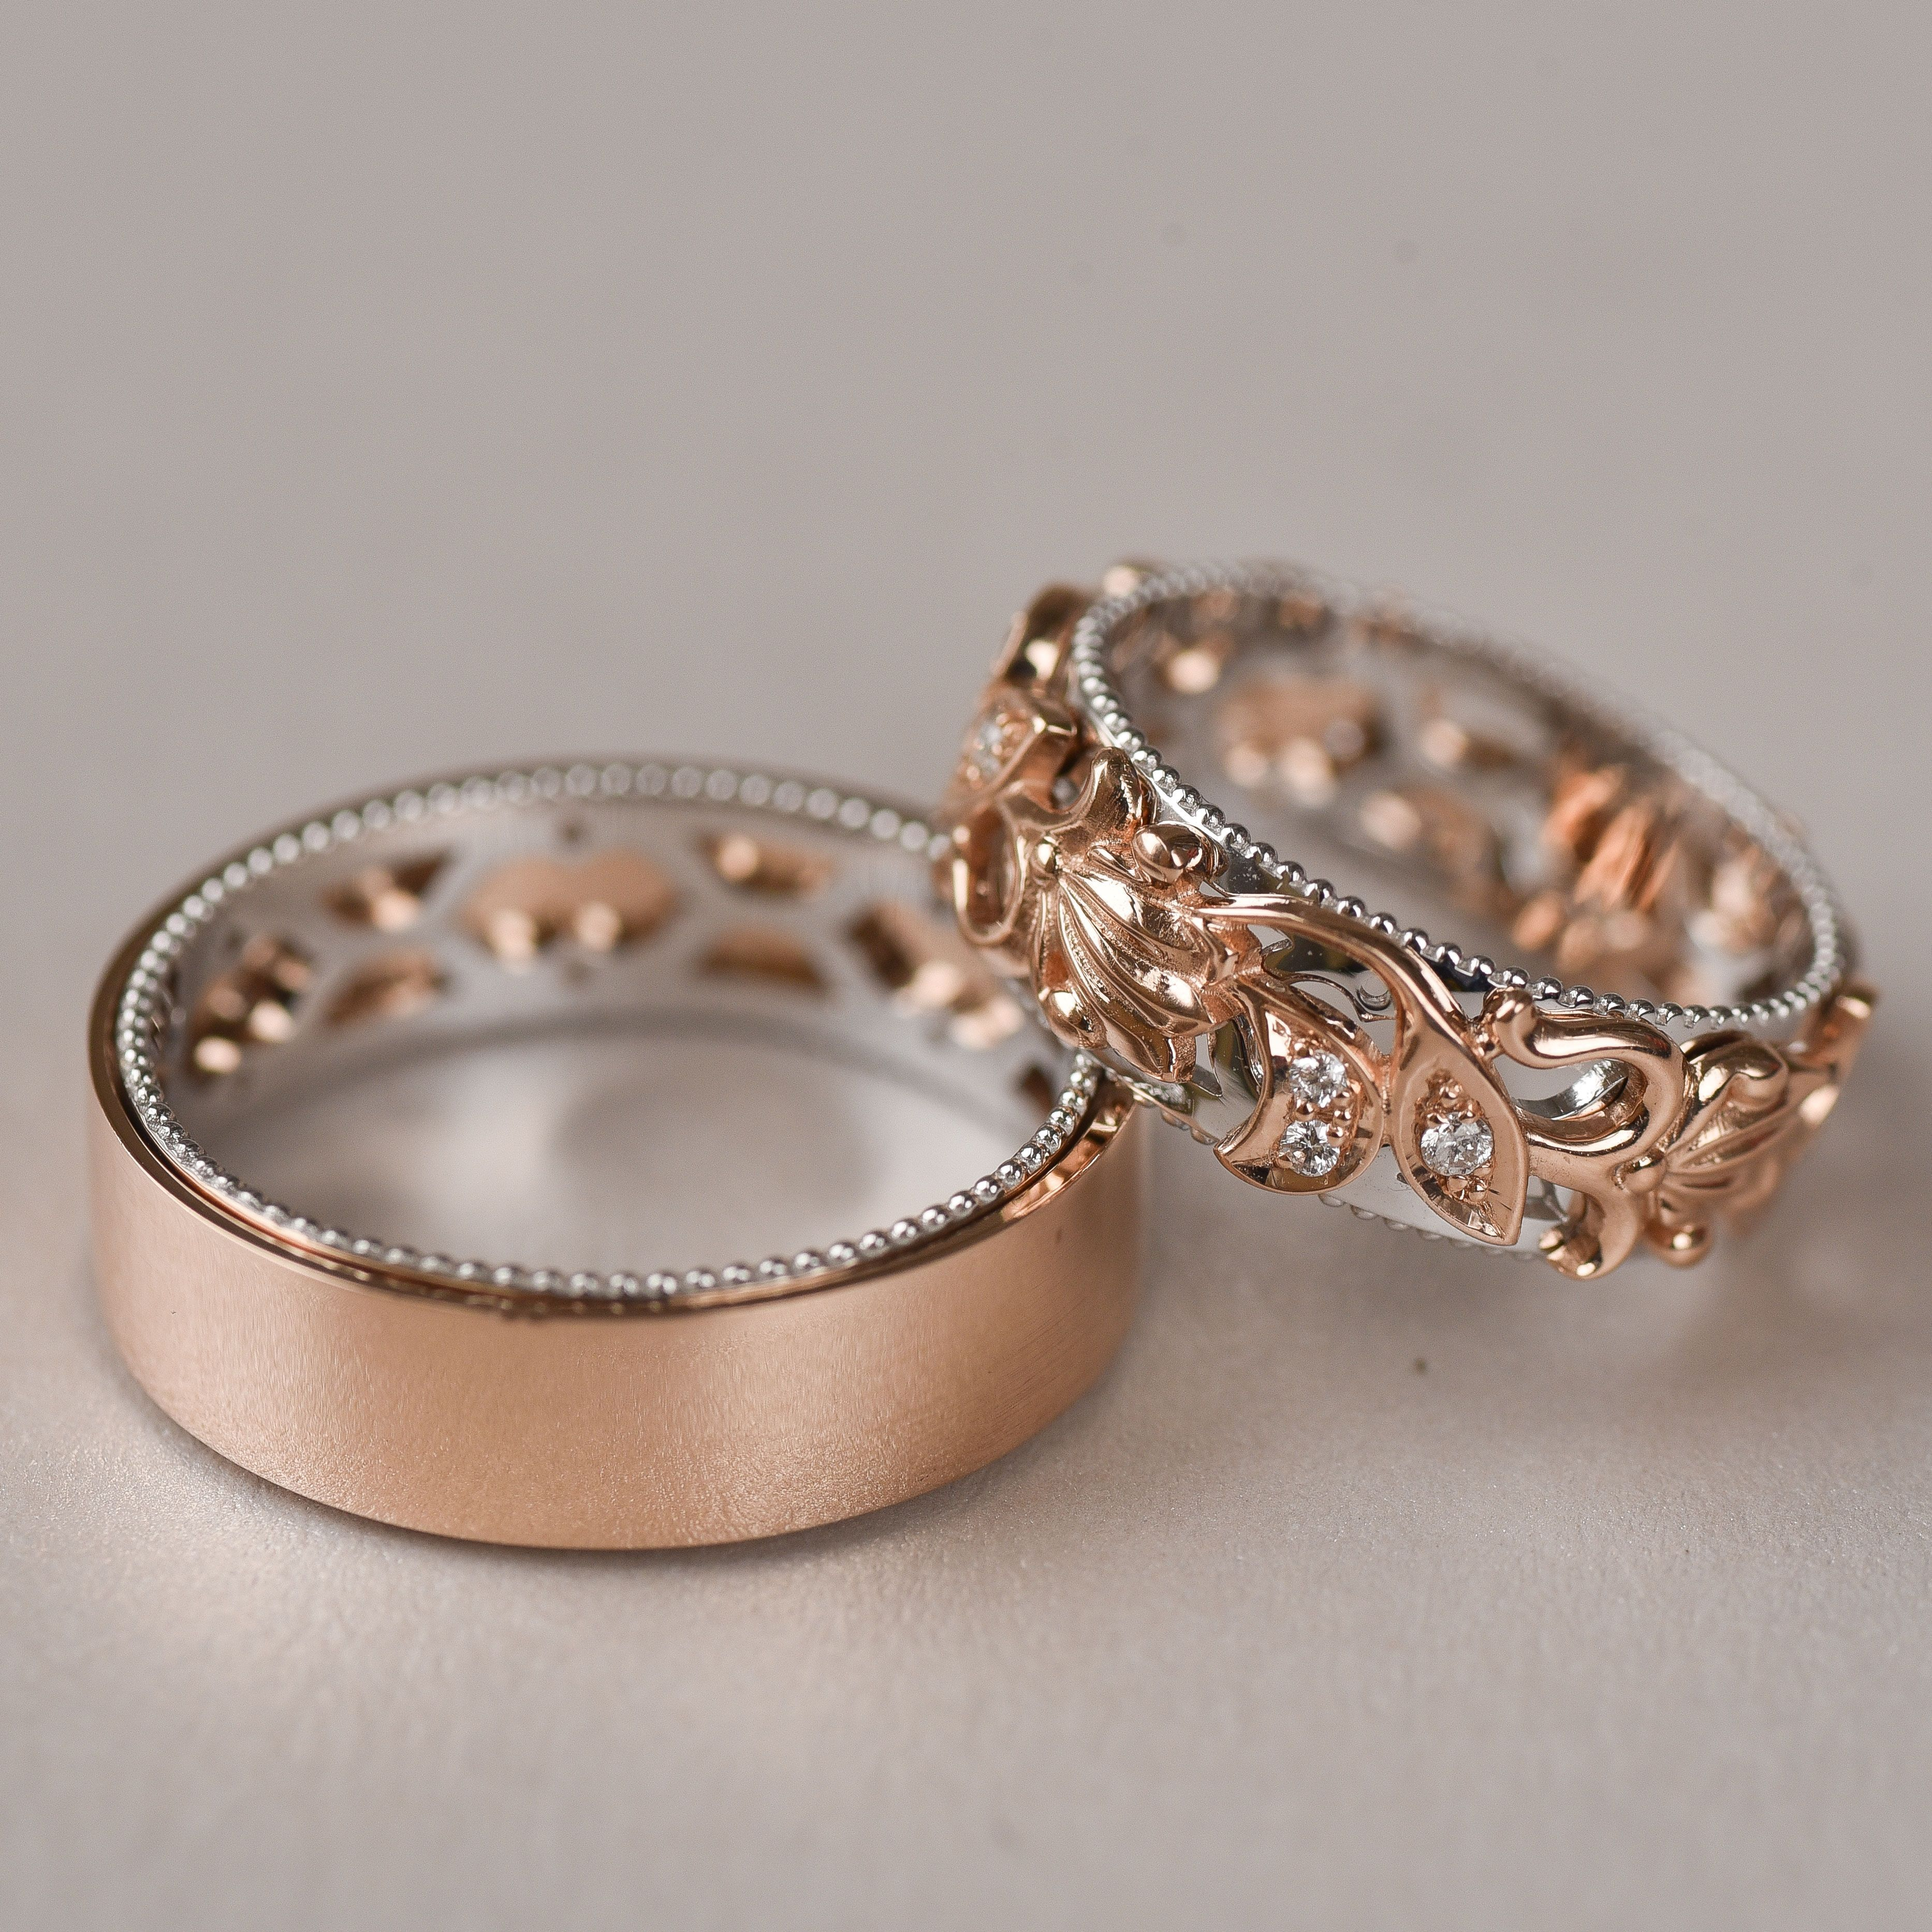 Pin By Wedding Rings Store On P In 2021 Wedding Rings Sets His And Hers Couple Wedding Rings Unusual Wedding Rings